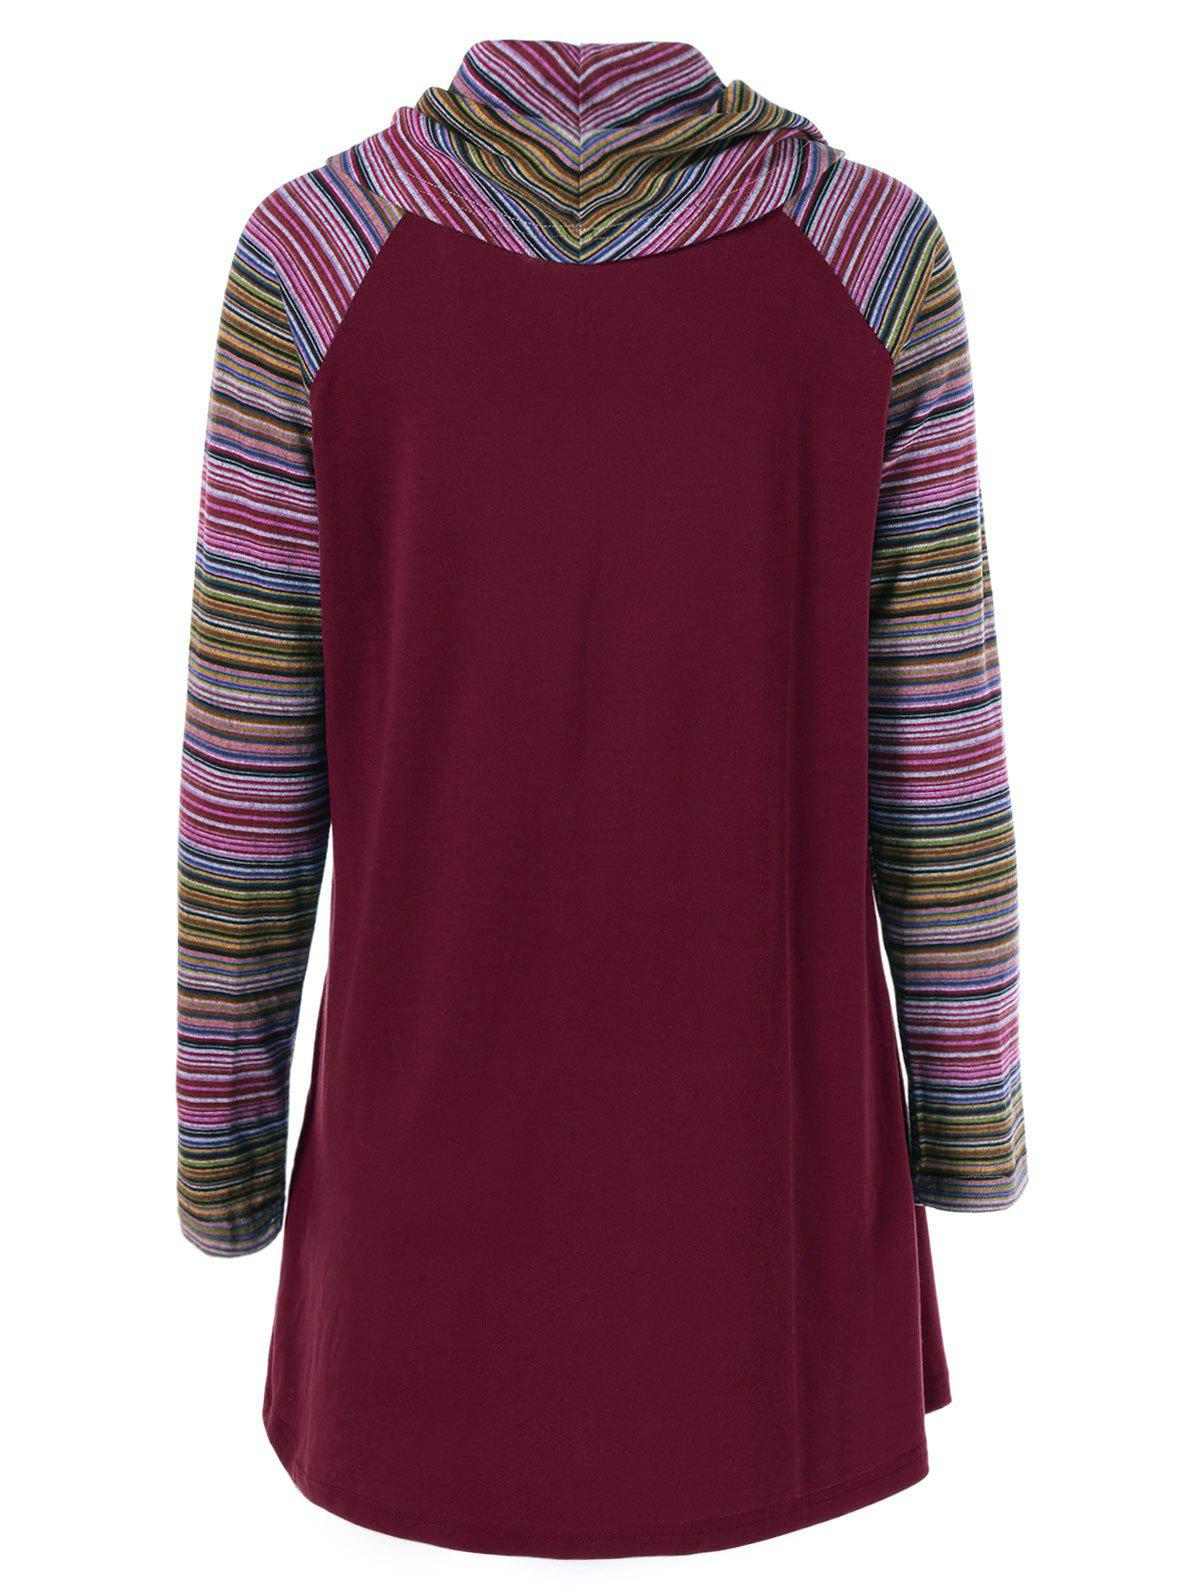 Cowl Neck Colorful Striped T-Shirt - WINE RED XL